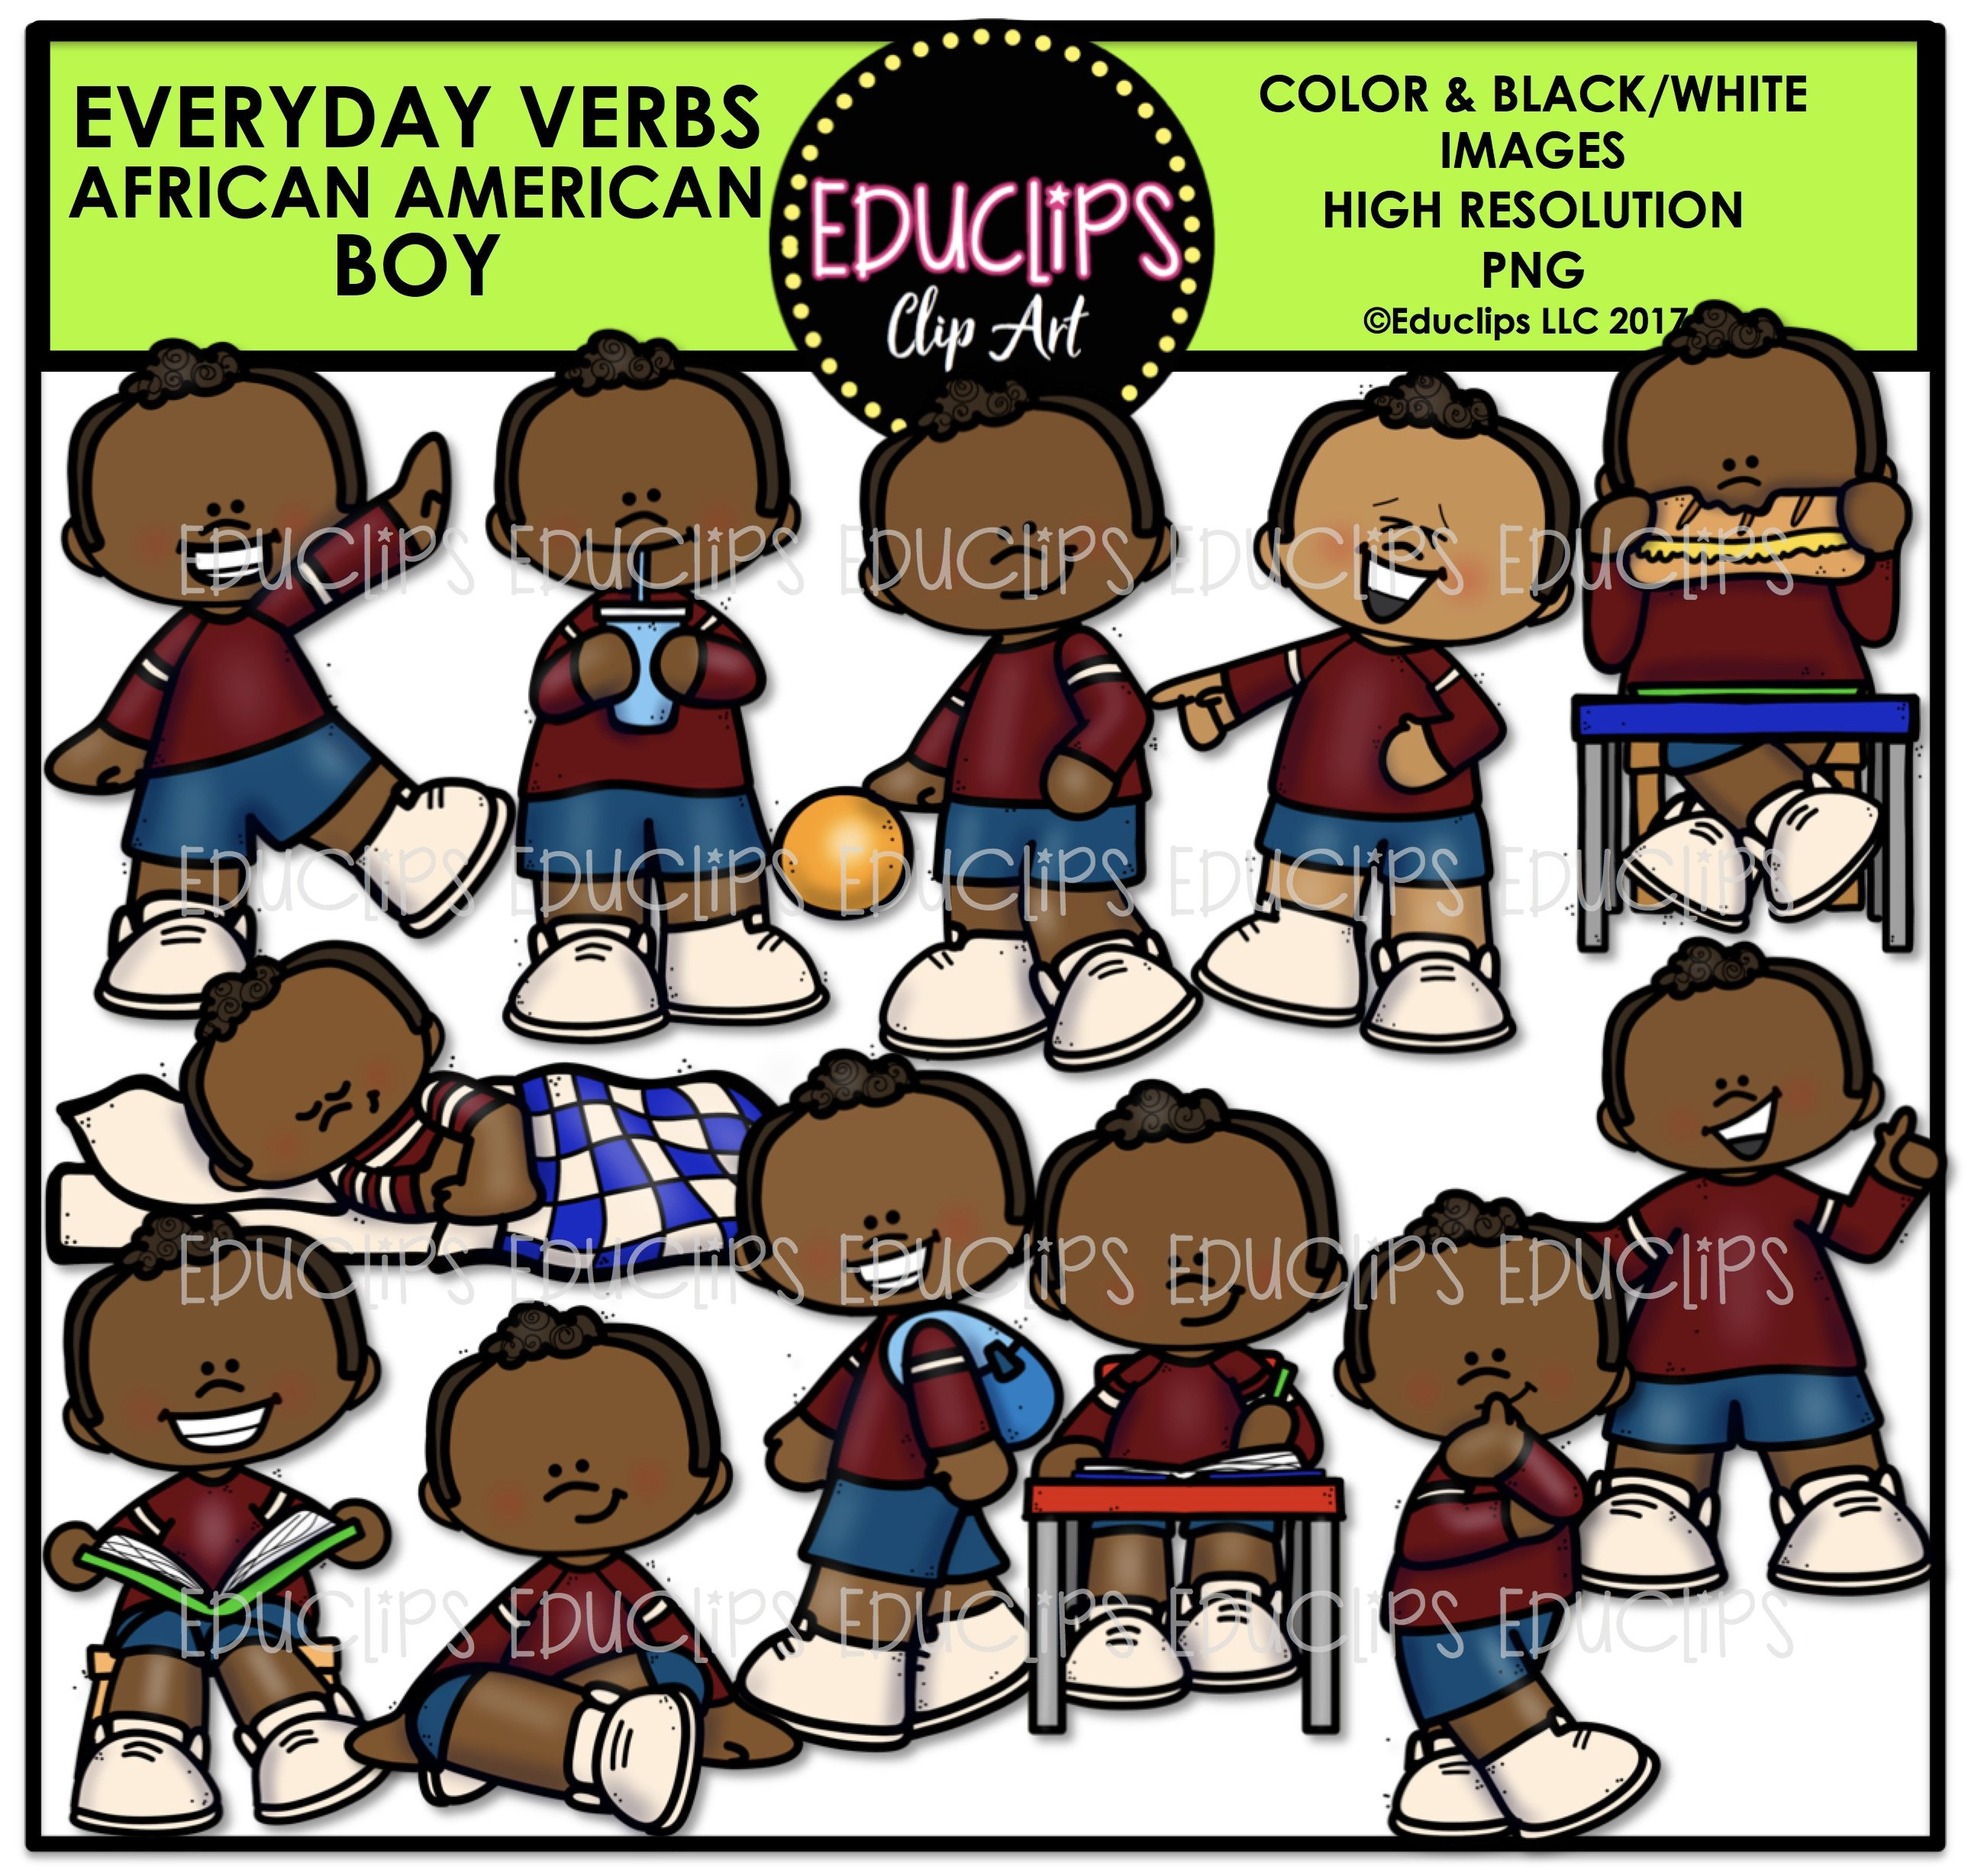 Everyday Verbs African American Boy Clip Art Bundle (Color and B&W).